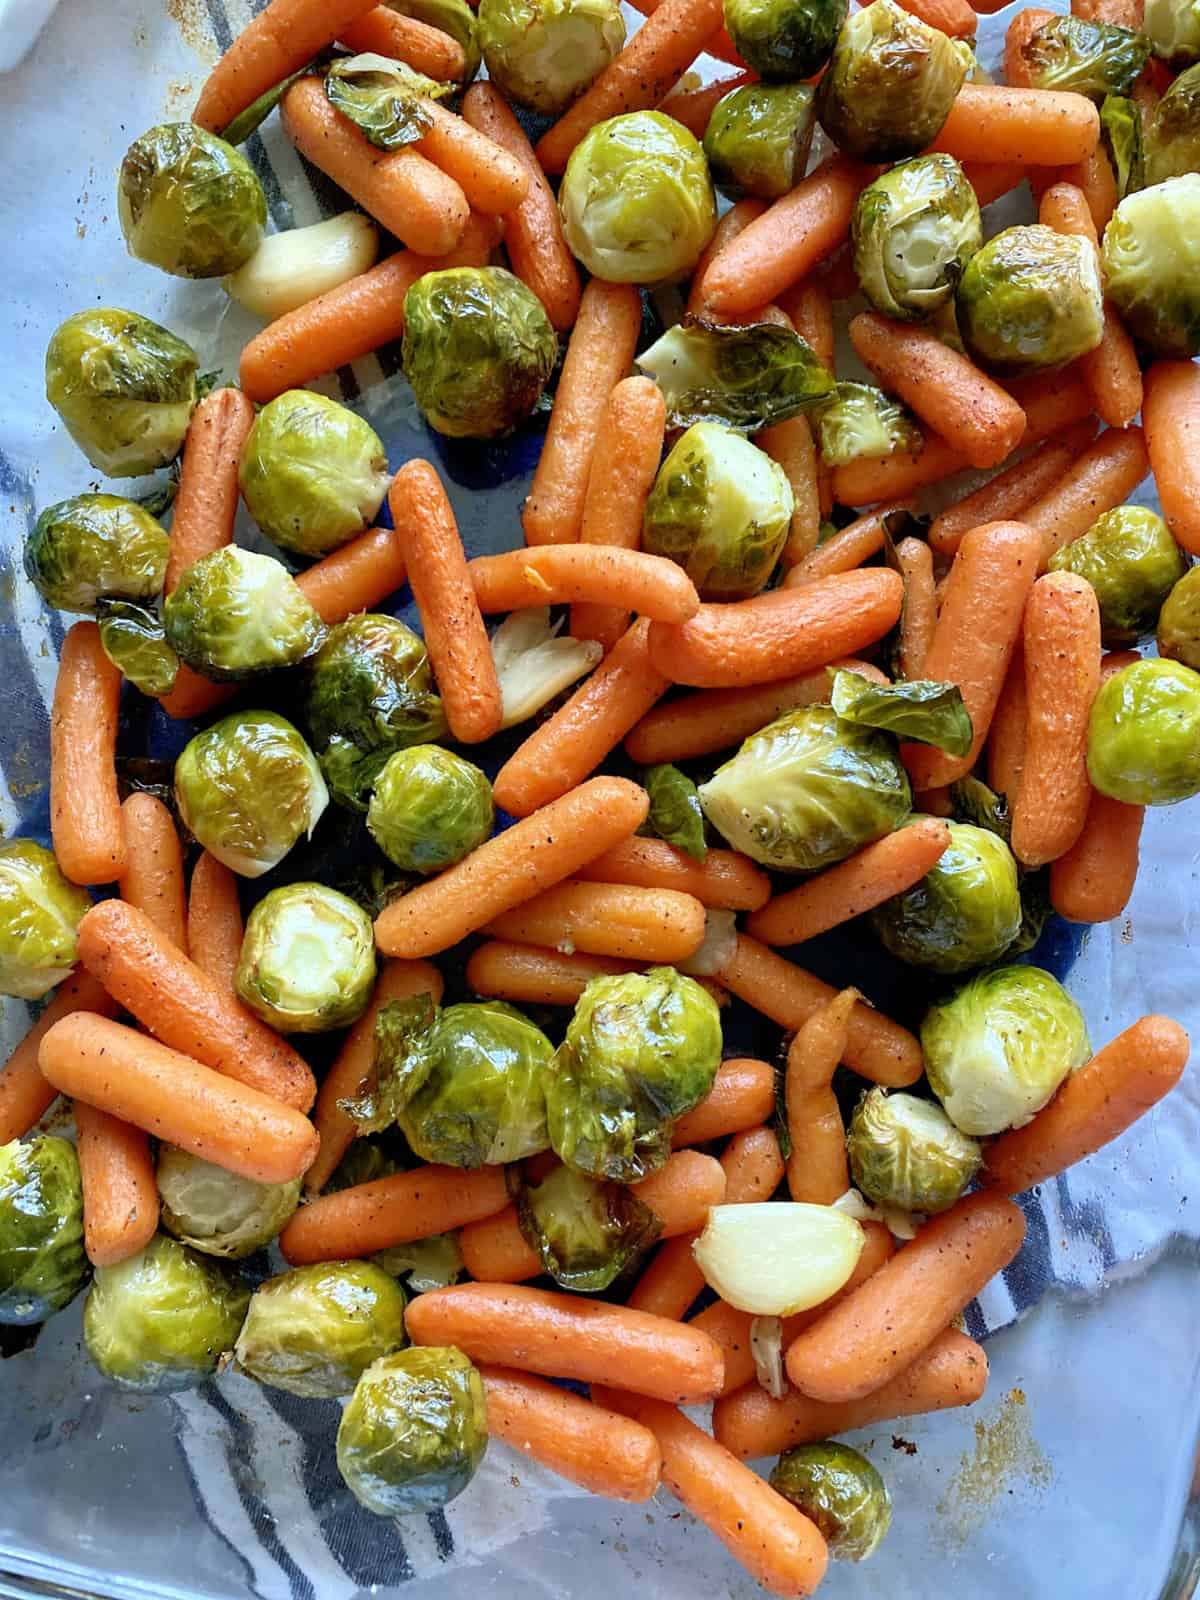 Top view of a glass baking dish filled with Roasted Brussels Sprouts cloves of garlic, and baby Carrots.